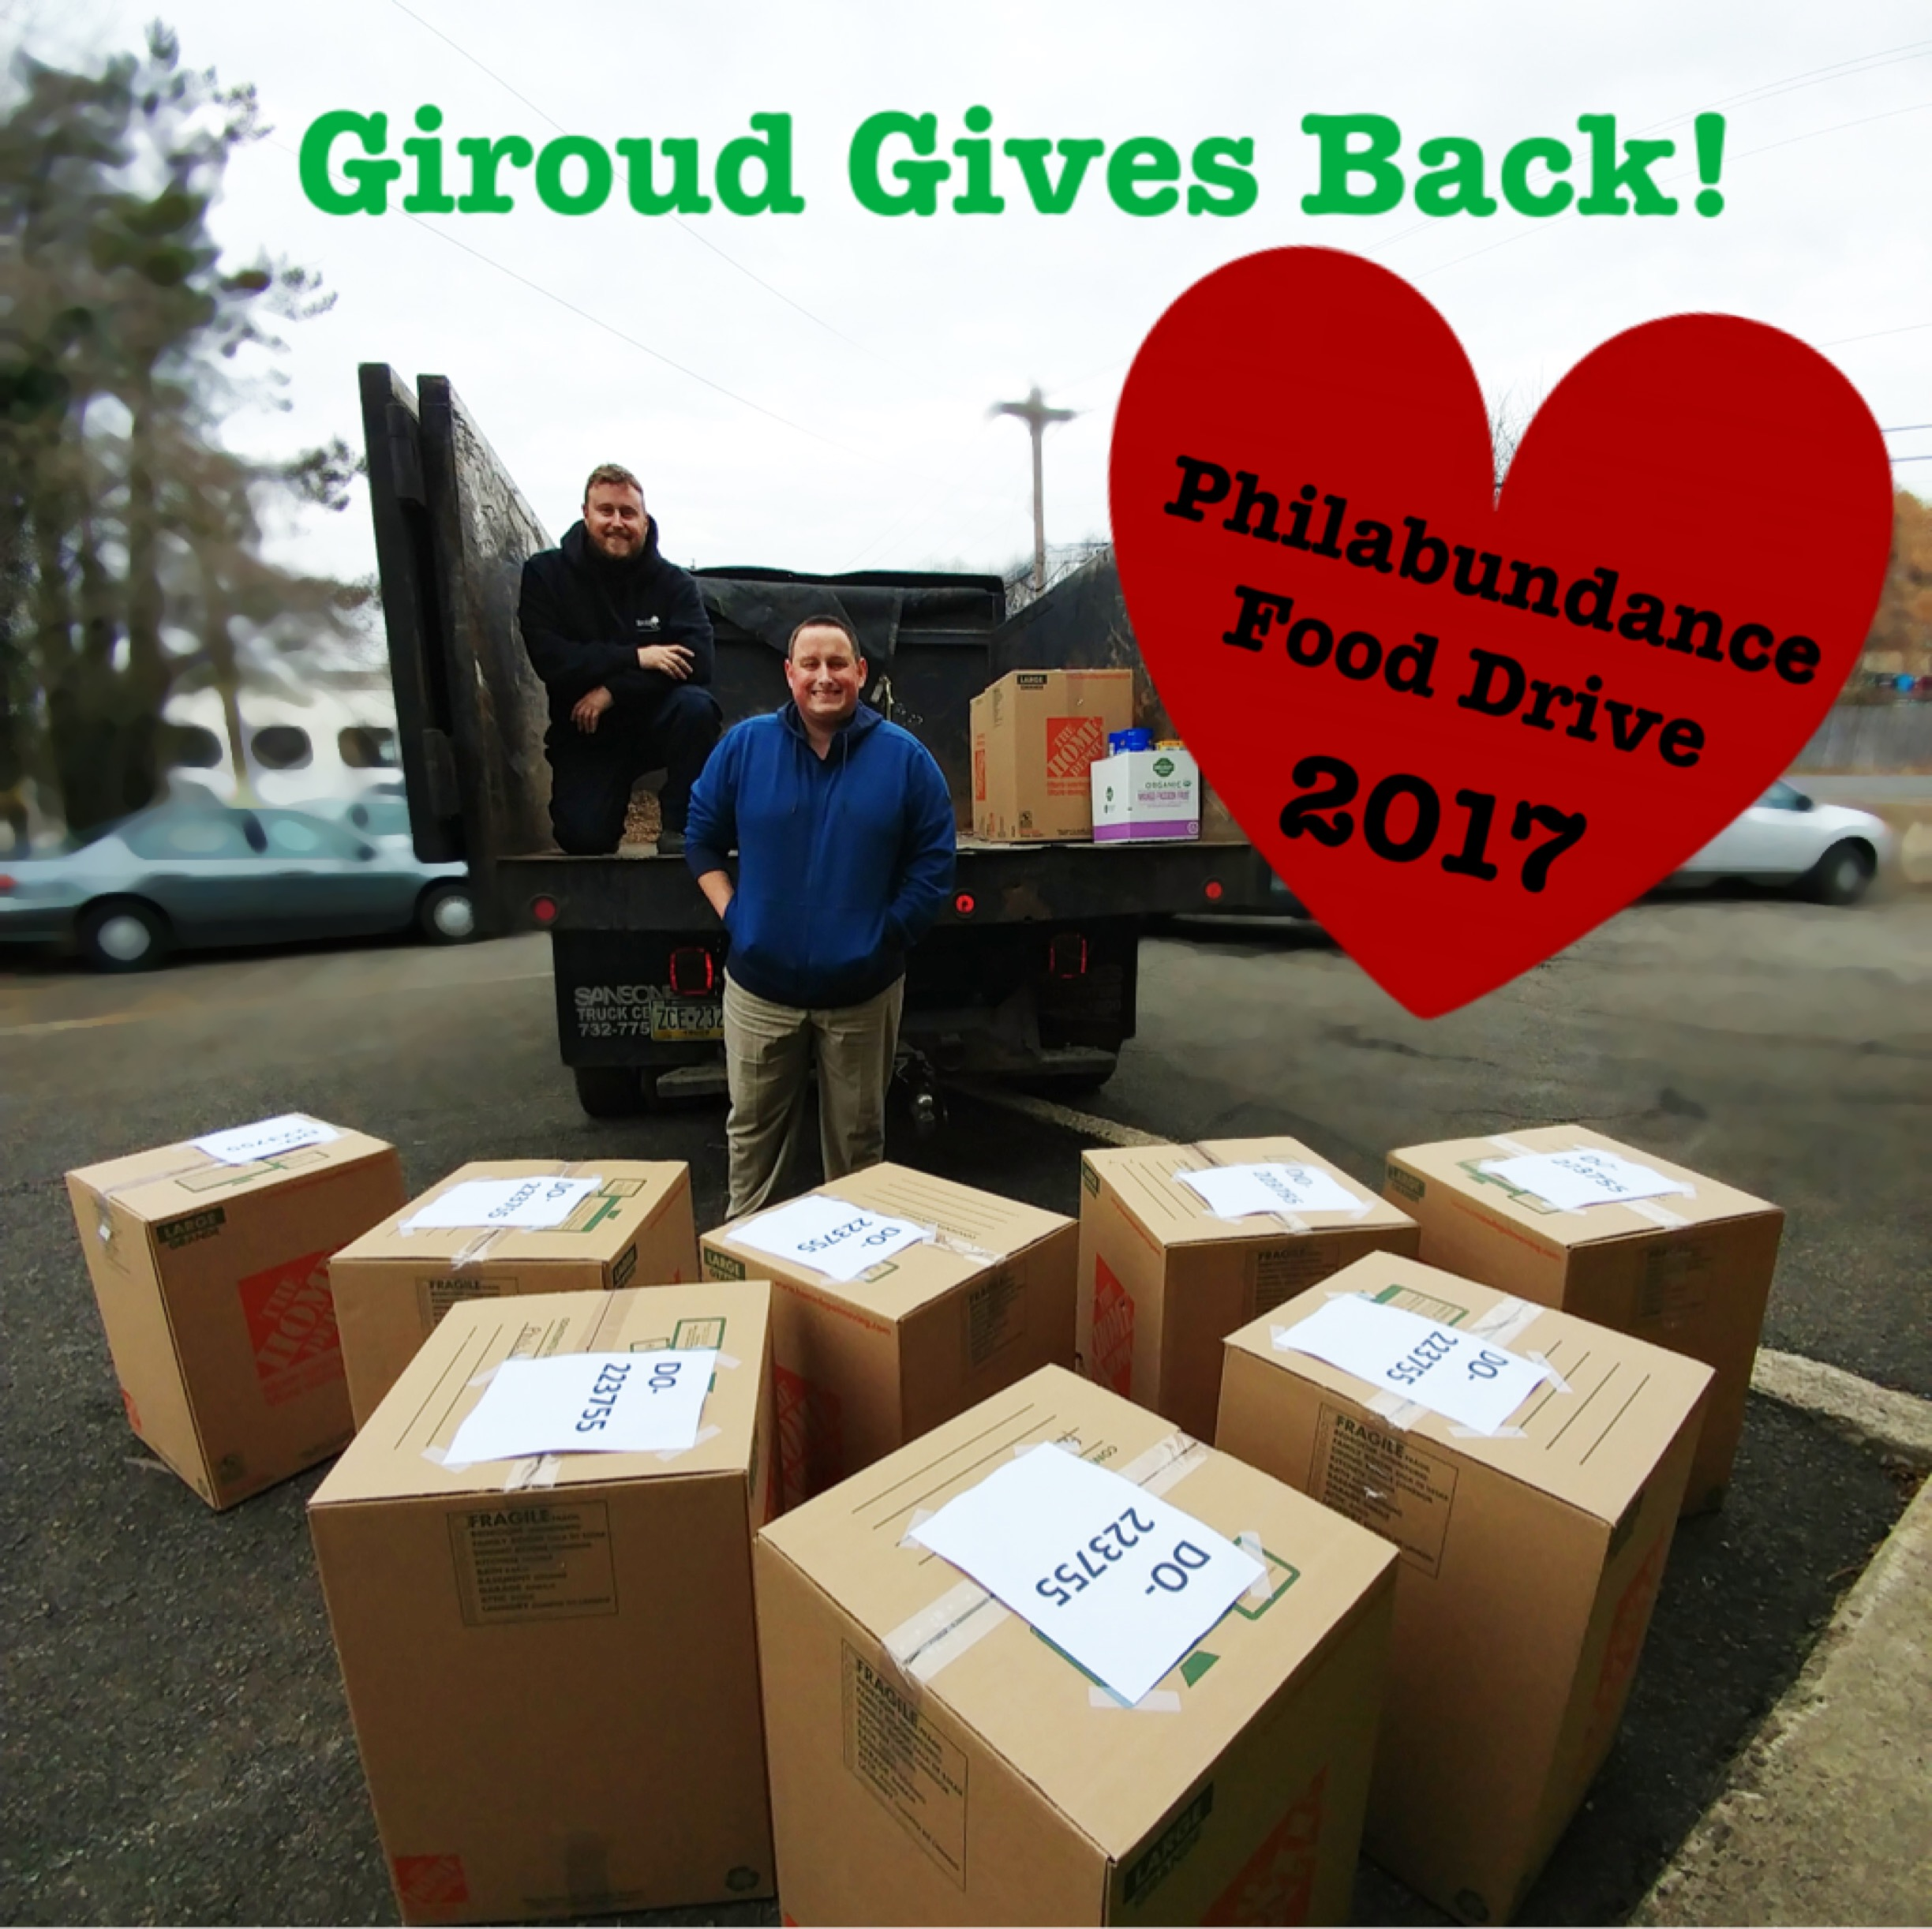 Giroud Gives Back to Philabundance Matt & Jeff Giroud Deliver